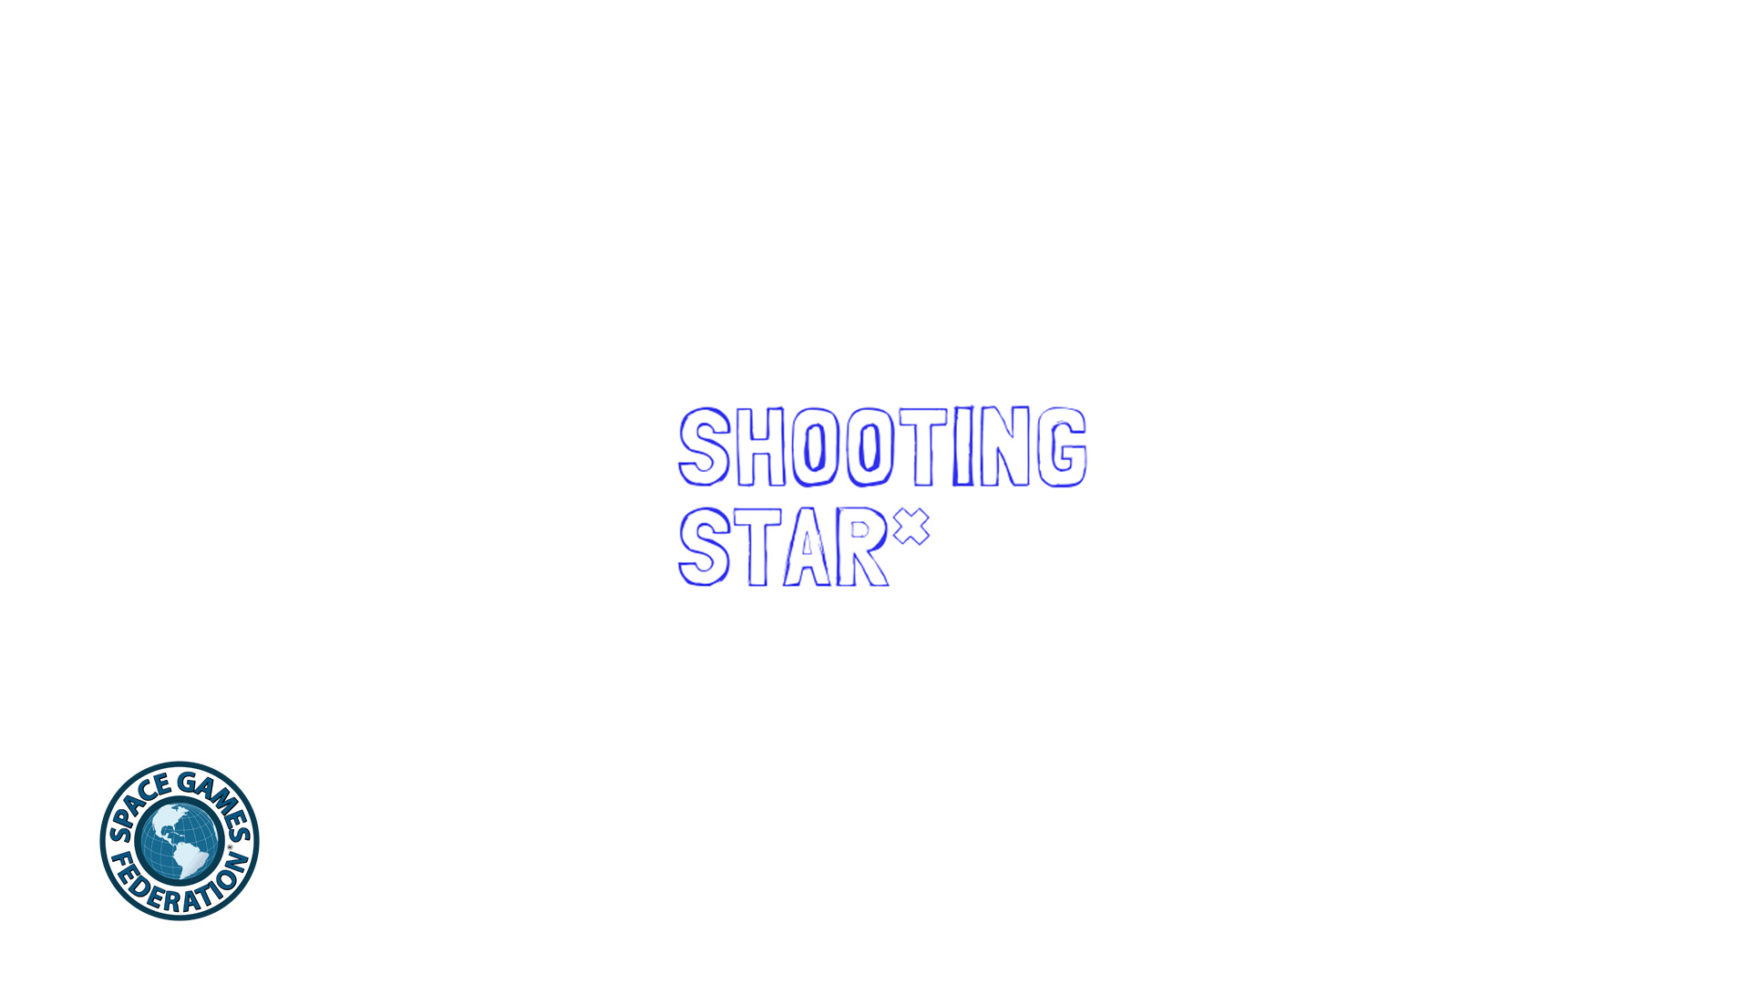 1). Shooting Star